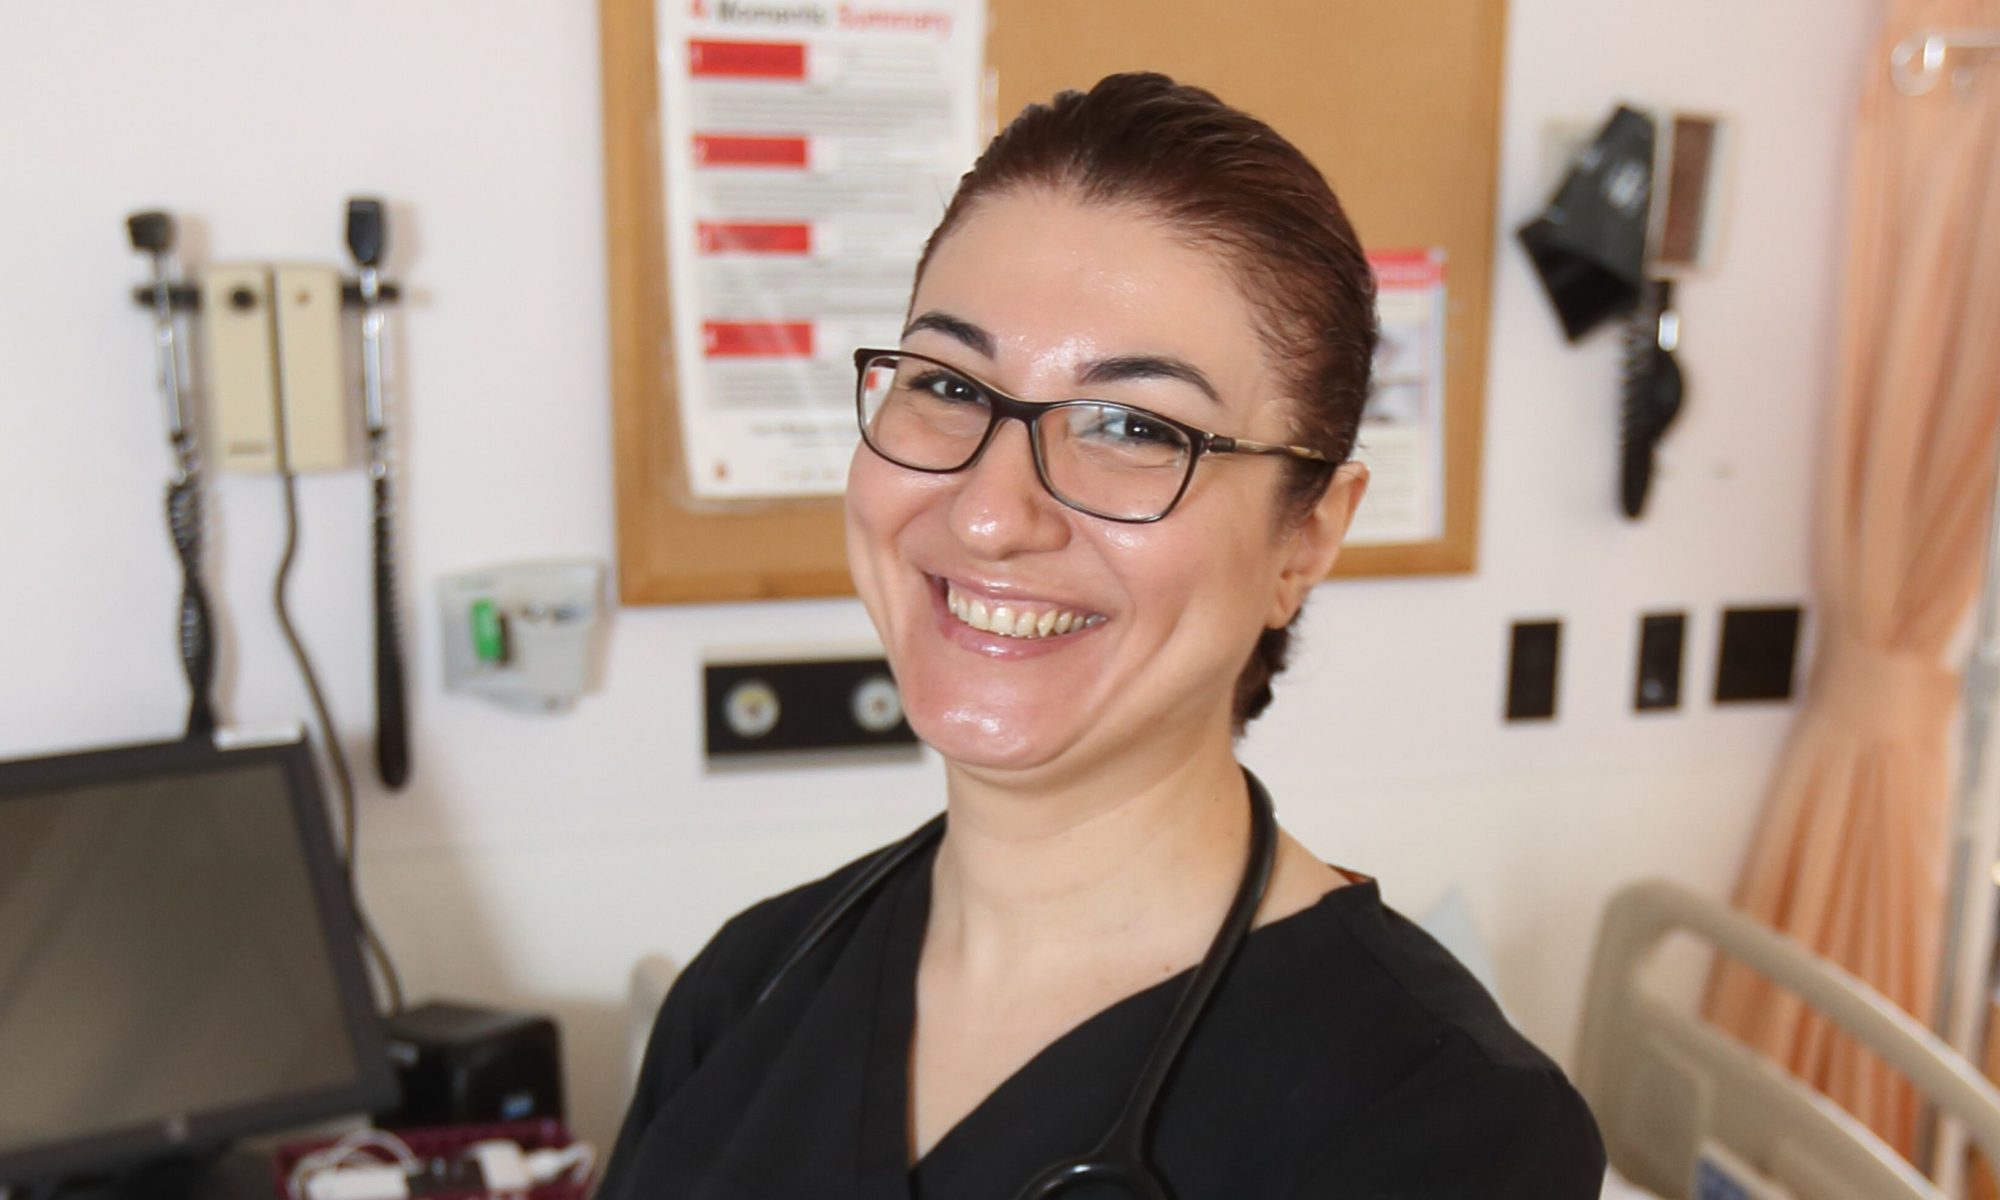 Nadine Ezzeddine poses inside the Nursing Simulation lab at Dalhousie University on March 20, 2019 in Halifax, Nova Scotia, where she teaches. When Ezzeddine arrived in Canada with years of health care experience and three degrees, she struggled to find work as a nurse. Now employed and on track to become a permanent resident, her advice for others is to 'be patient'. Photo by Mike Dembeck.